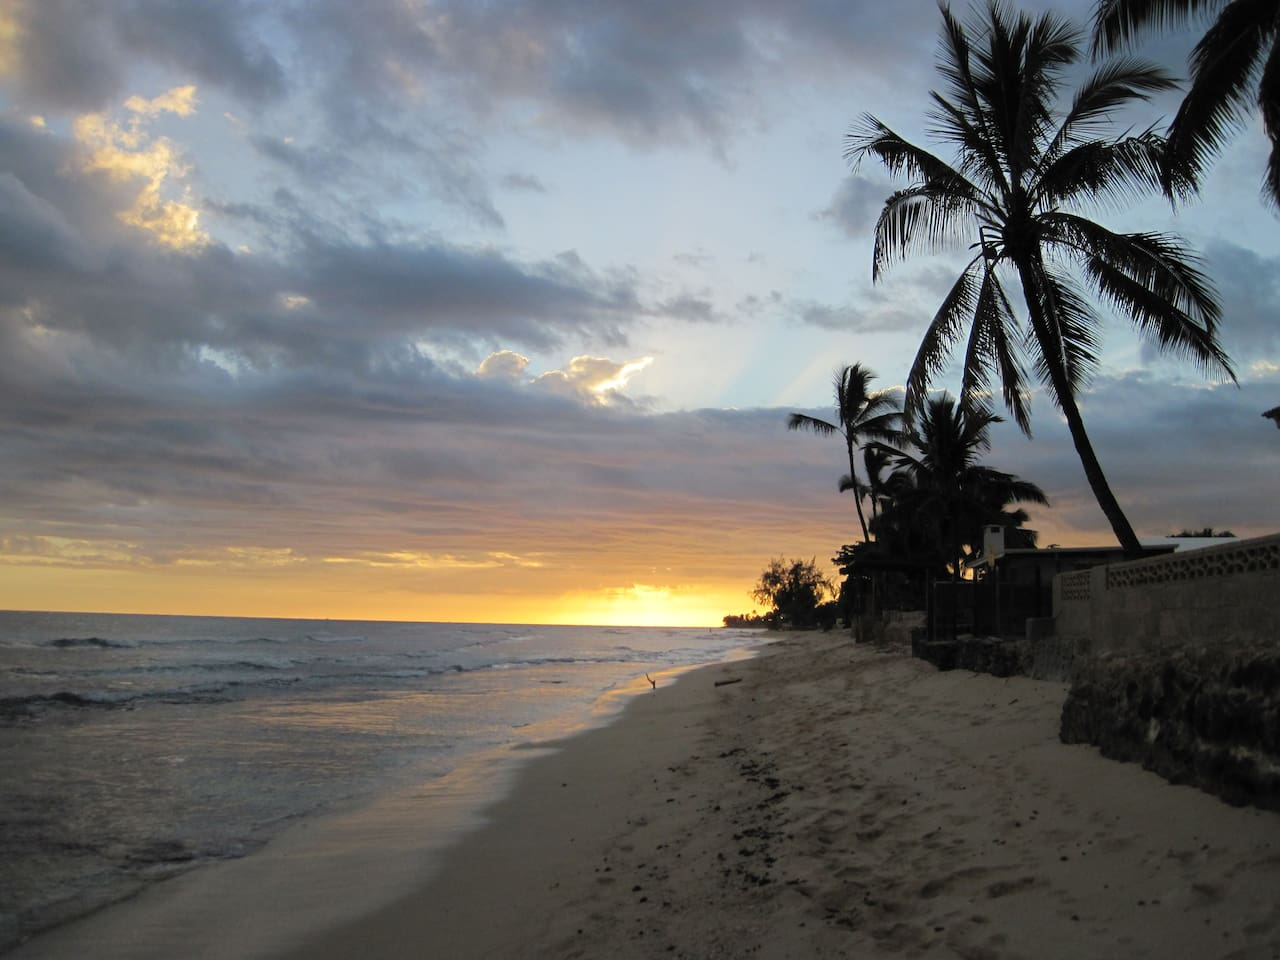 Sunset on Ewa Beach - steps from your front door.